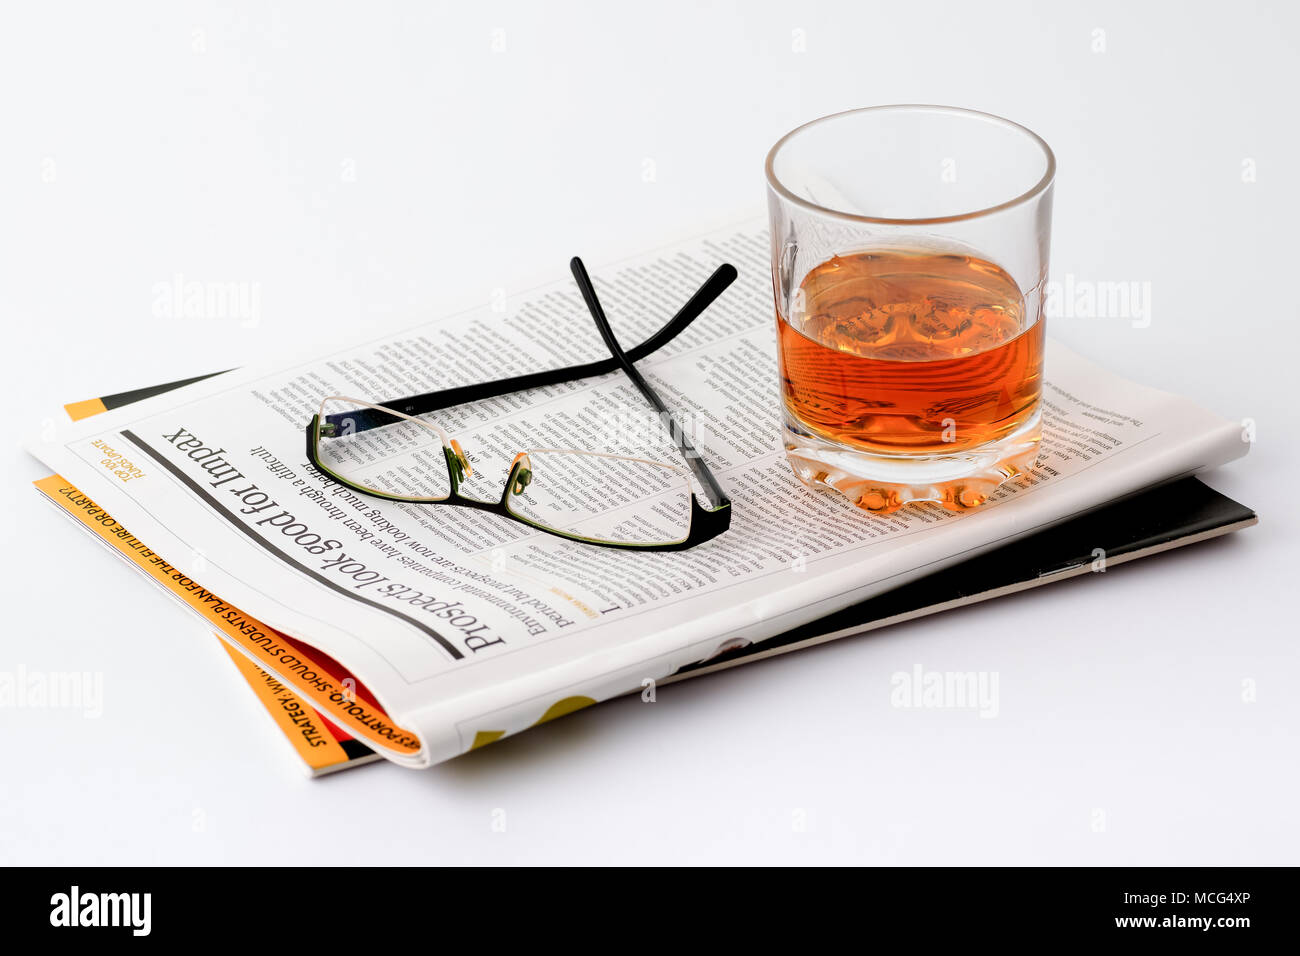 Reading glasses and glass of whiskey on a magazine about Financial Investing, Financial planning, Stock trading. White background. - Stock Image